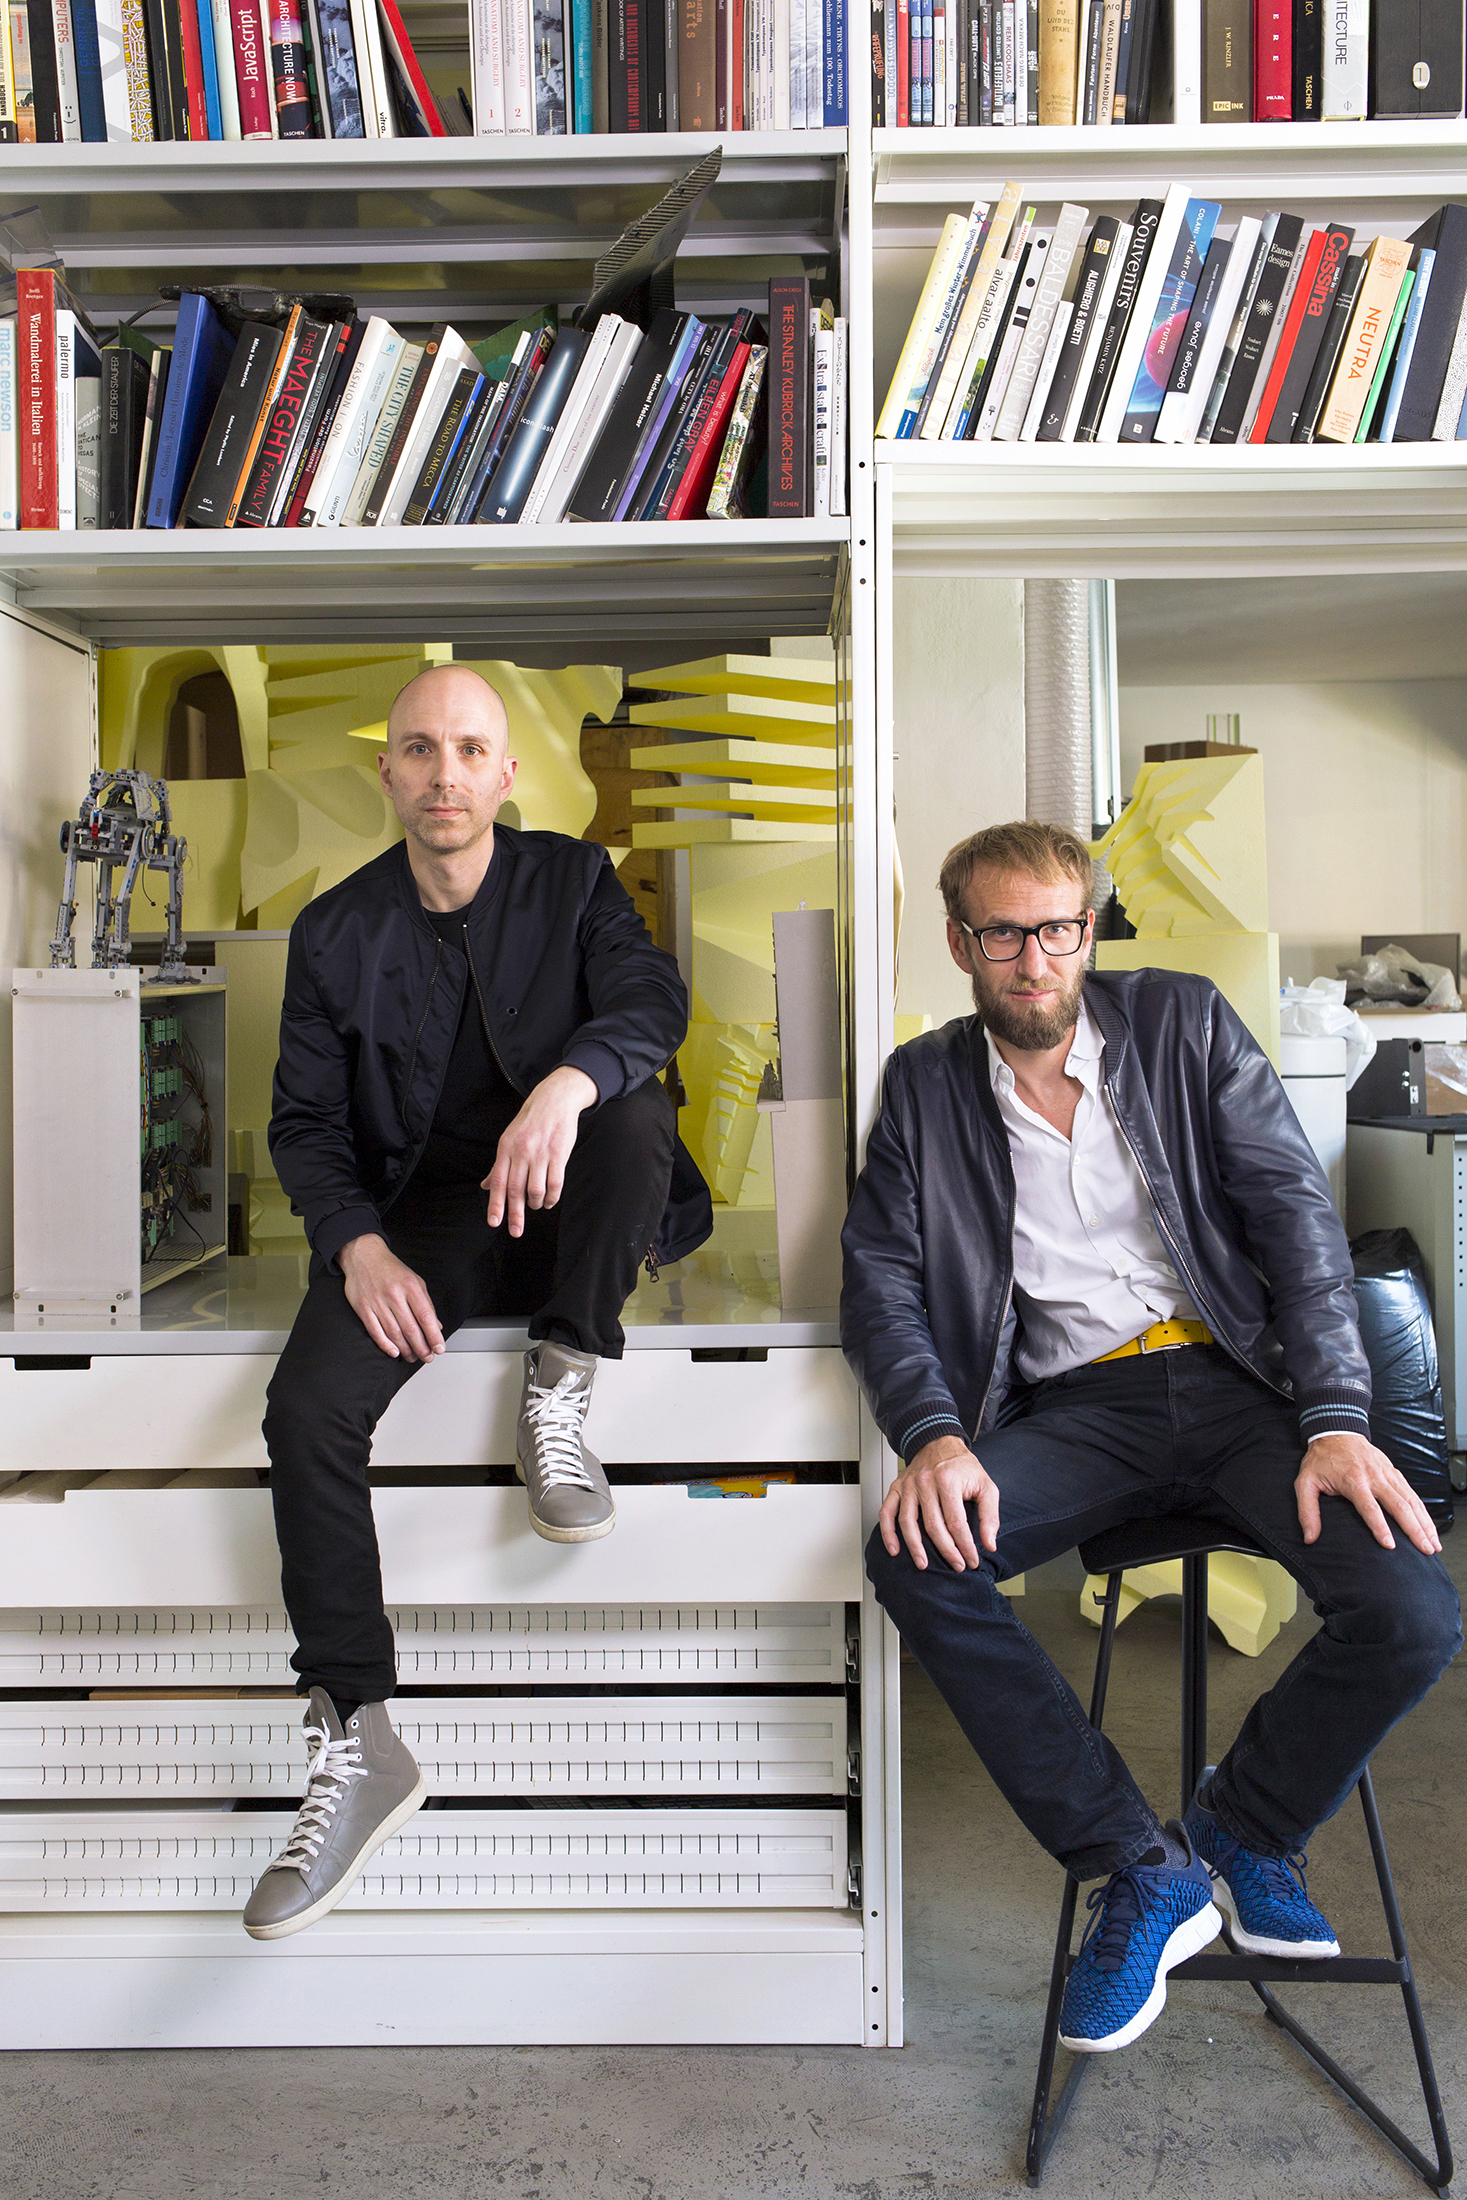 Reed Kram, left, and Clemens Weisshaar inside their Munich studio. (Photo: Marek Vogel/Surface)